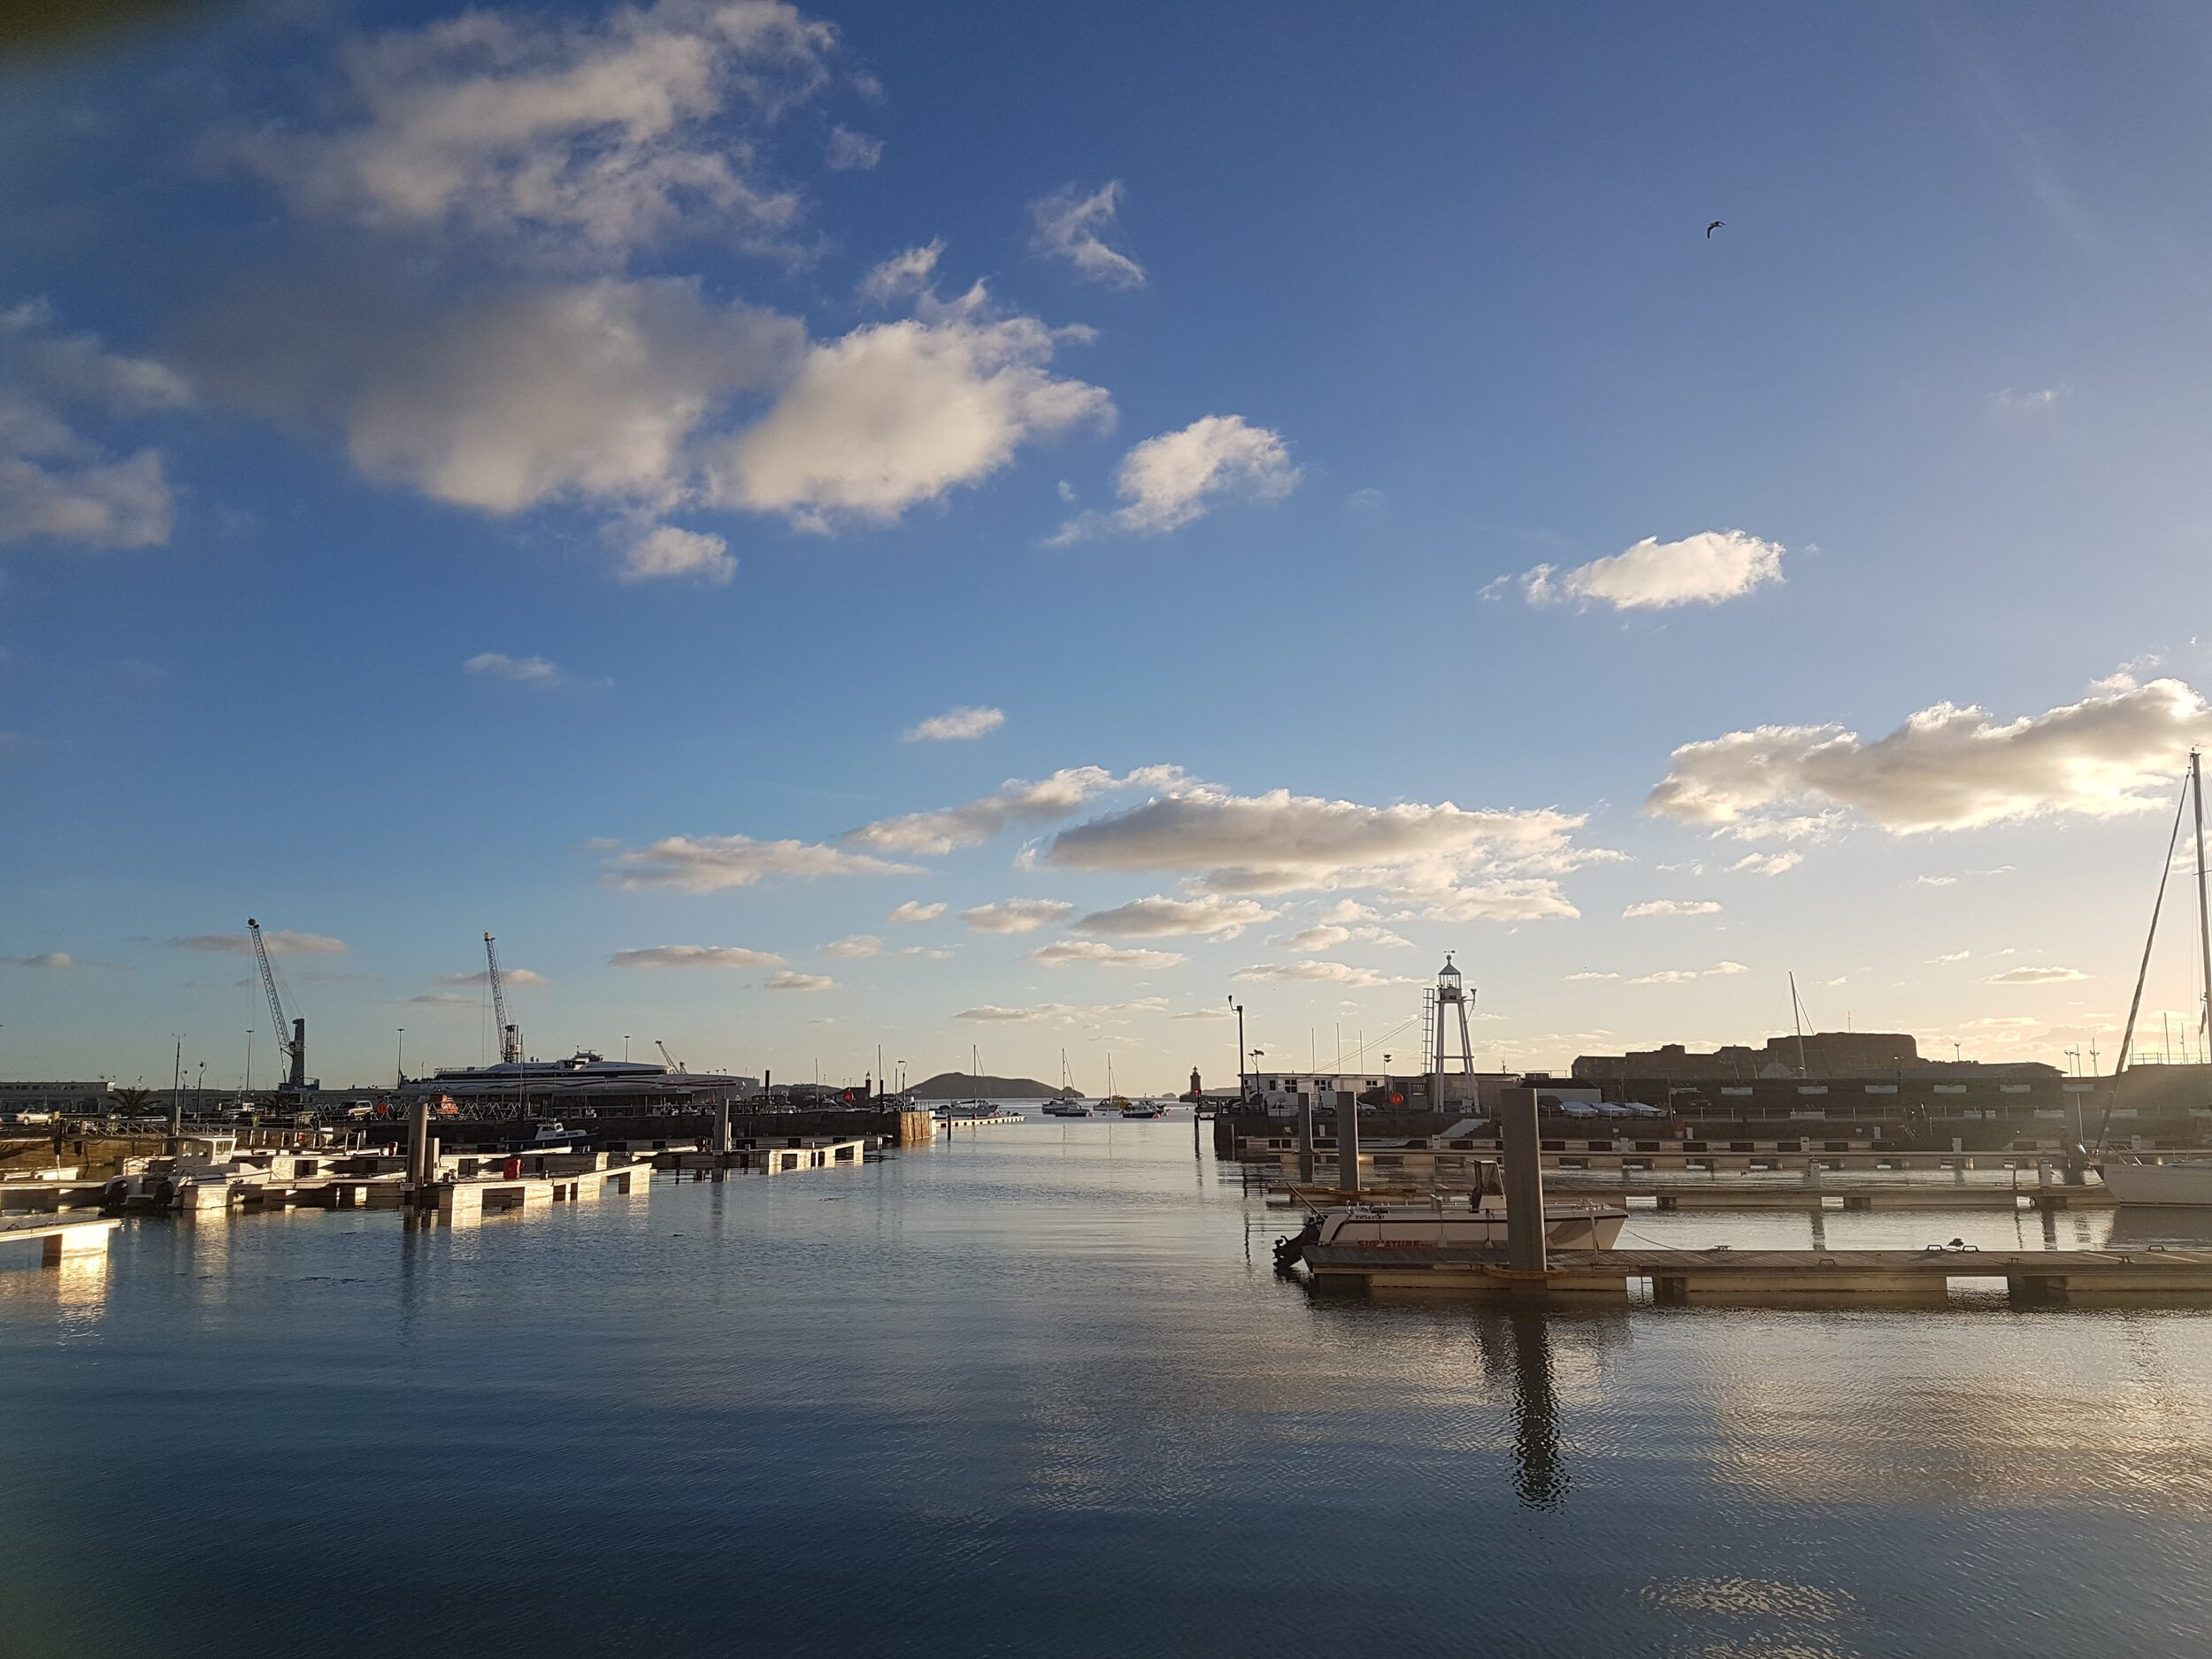 Victoria Marina in Guernsey - tony-brassell-xH2EwrttERY